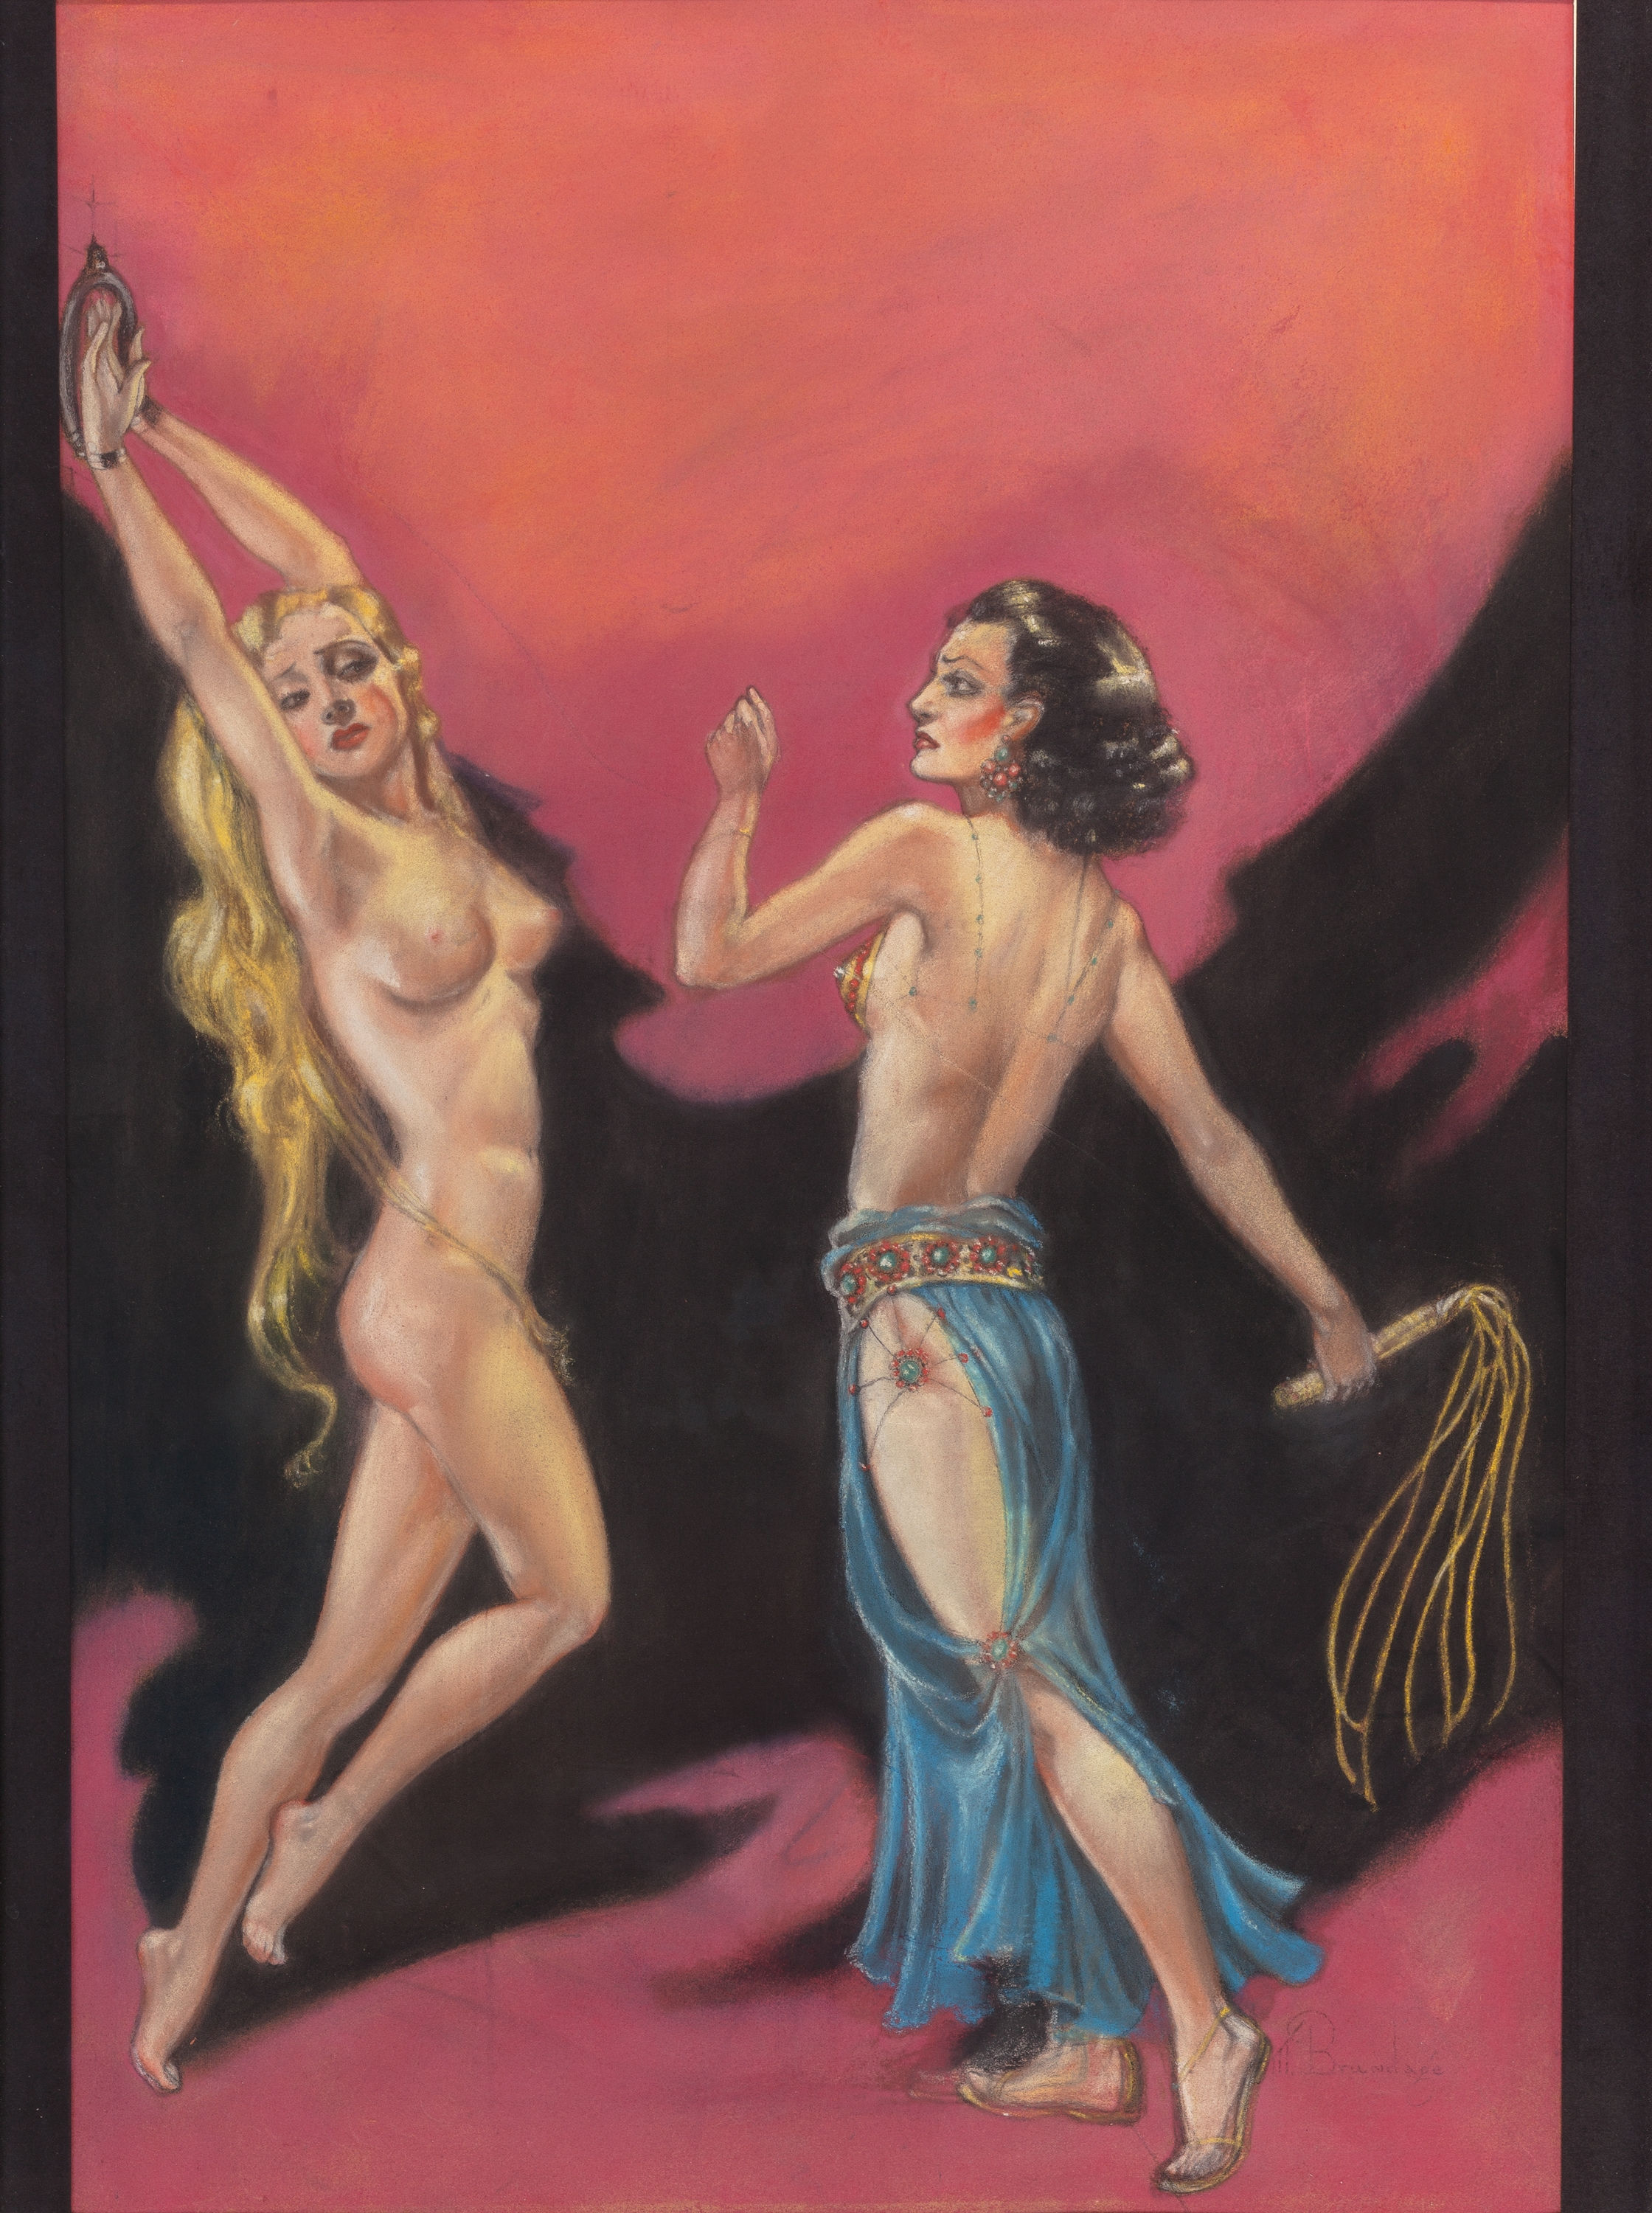 Held-Against-Her-Will-Weird-Tales-pulp-magazine-cover